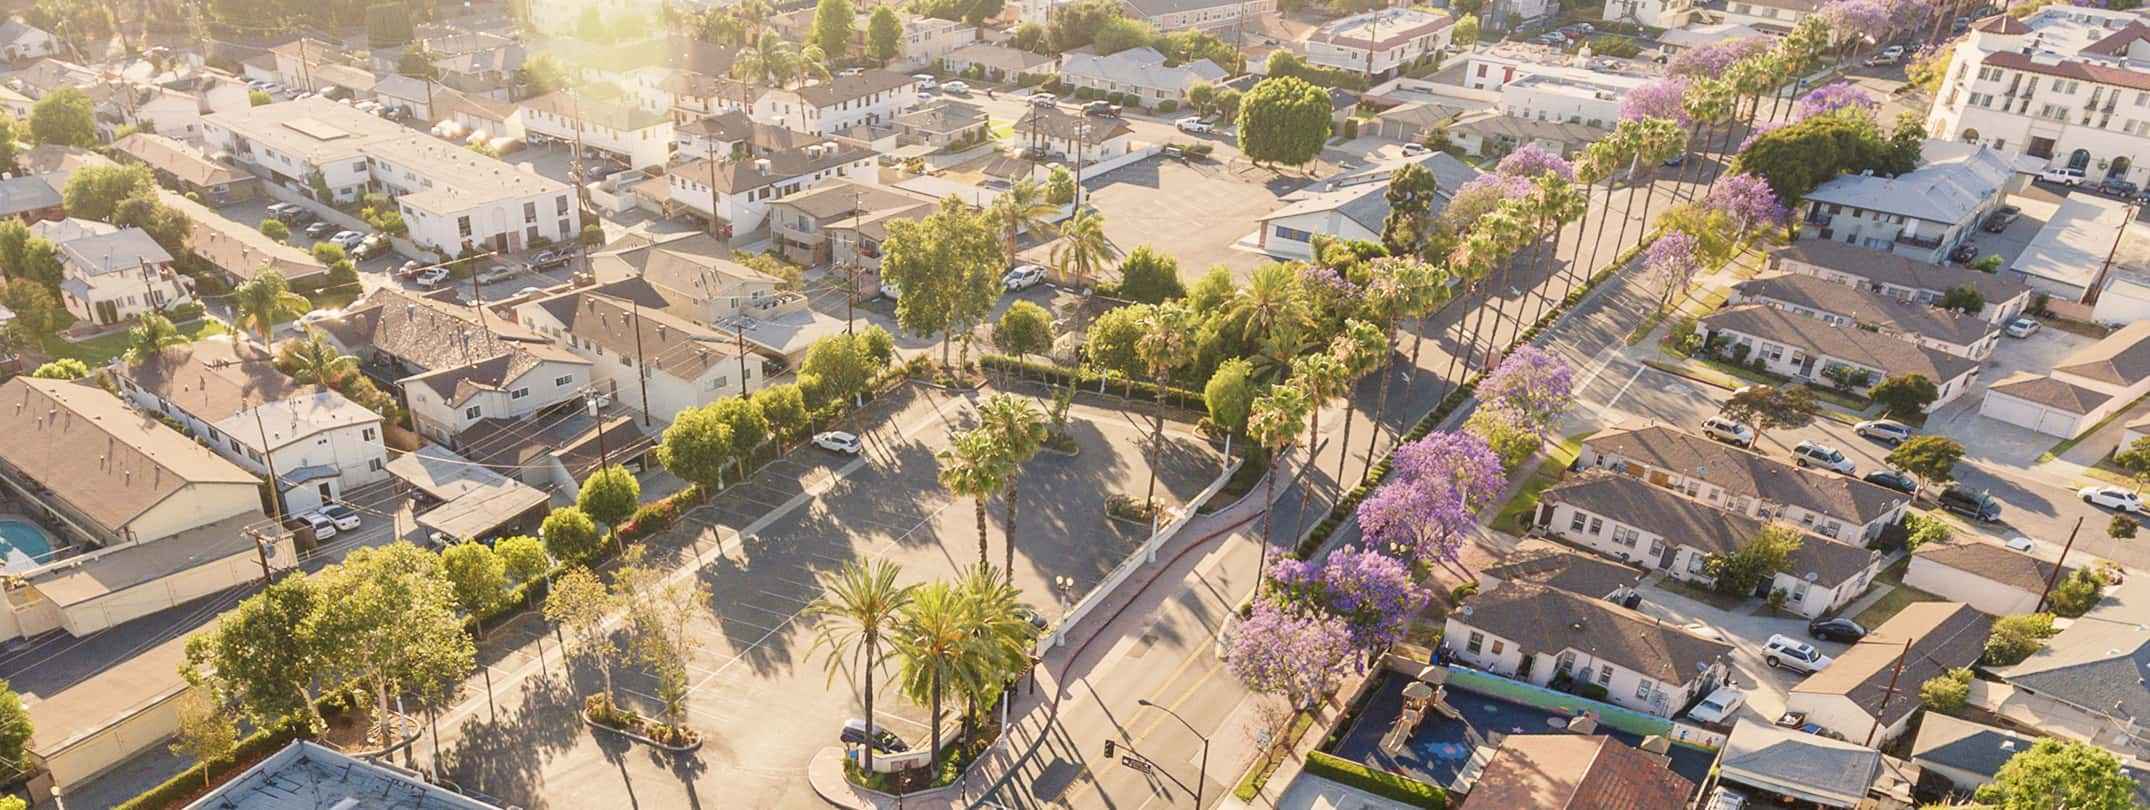 Arial view of the Blossom Market Hall and streets of San Gabriel.